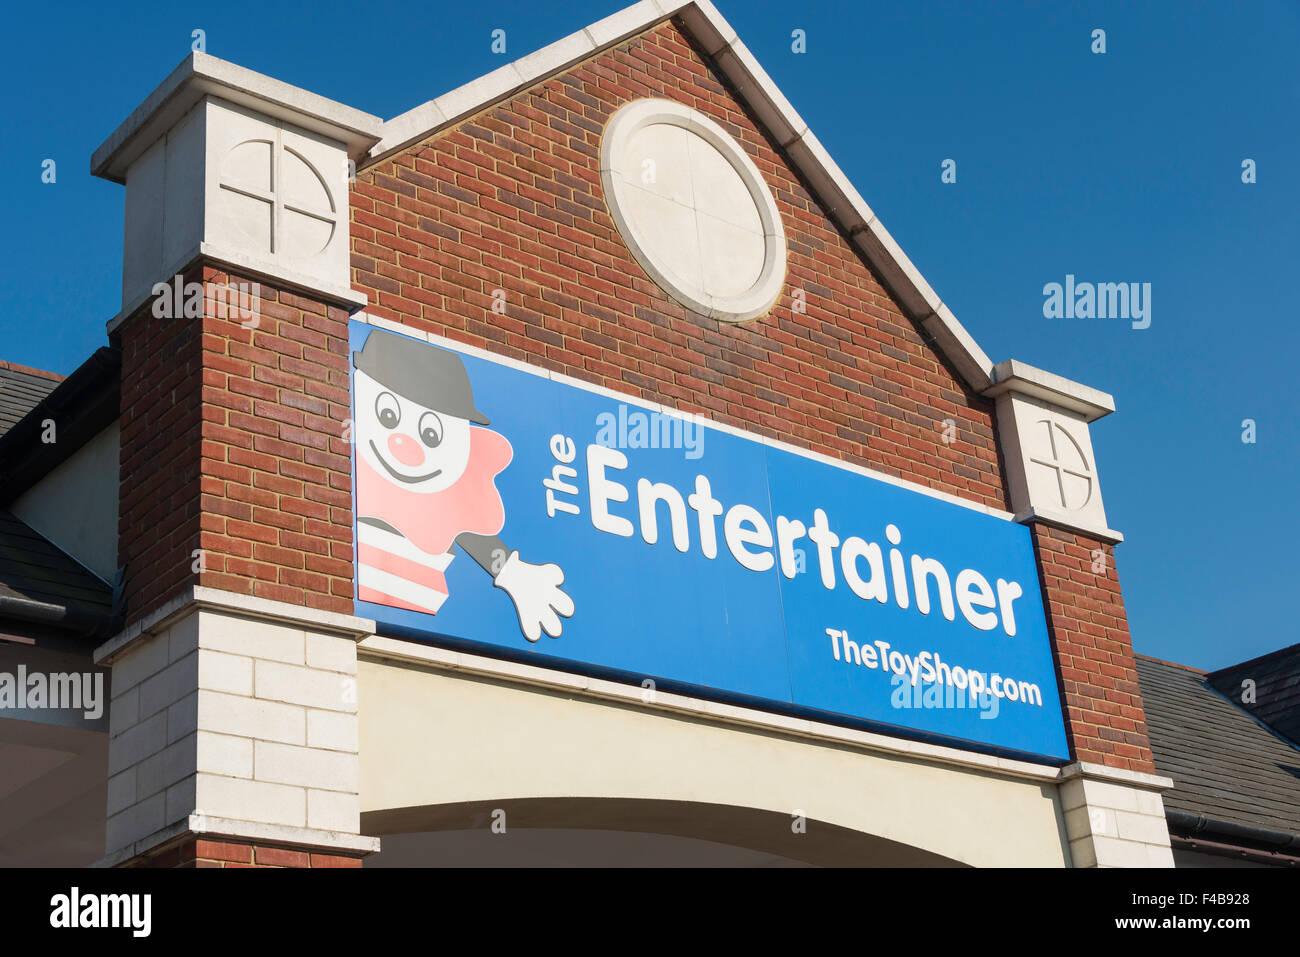 The Entertainer toy shop entrance, Two Rivers Shopping Centre, Staines-upon-Thames, Surrey, England, United Kingdom - Stock Image